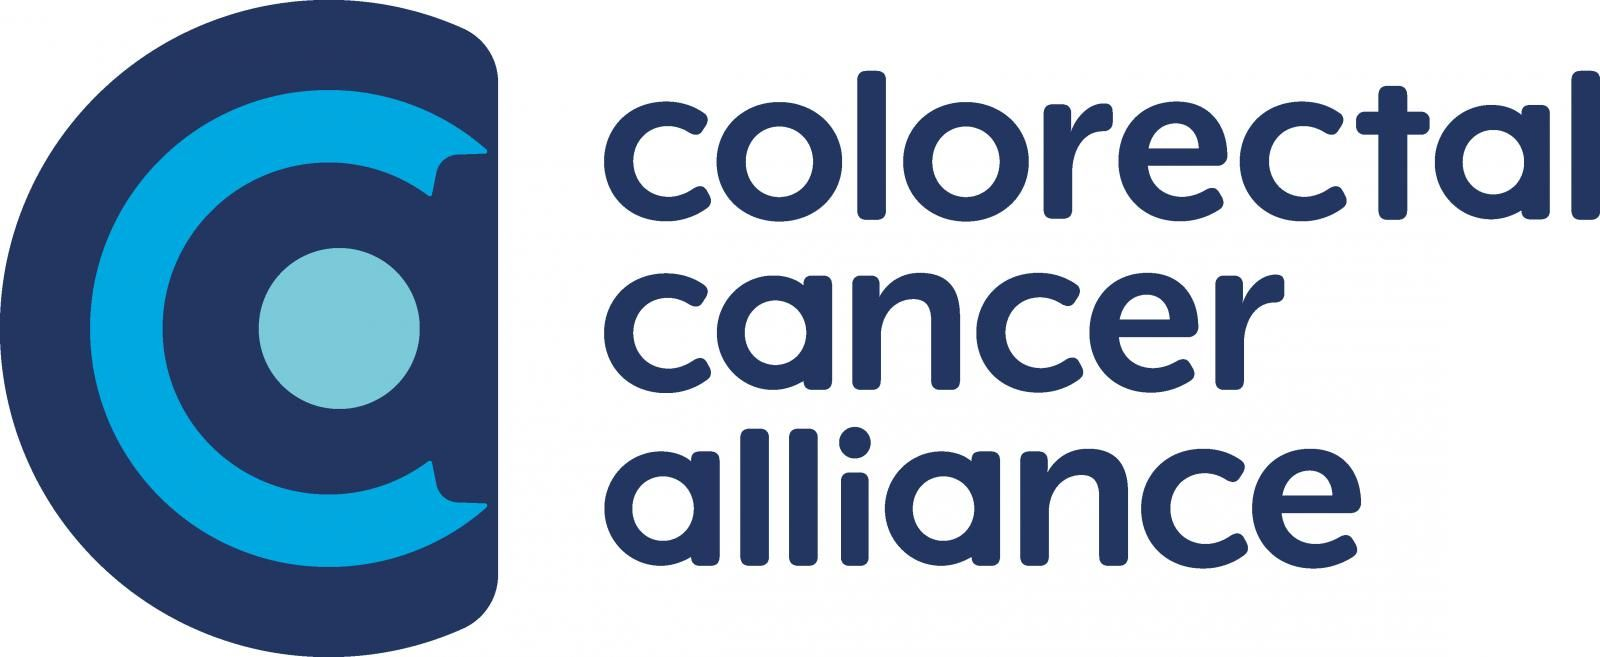 Colon Cancer Alliance Announces Corporate Name Change Cure Today